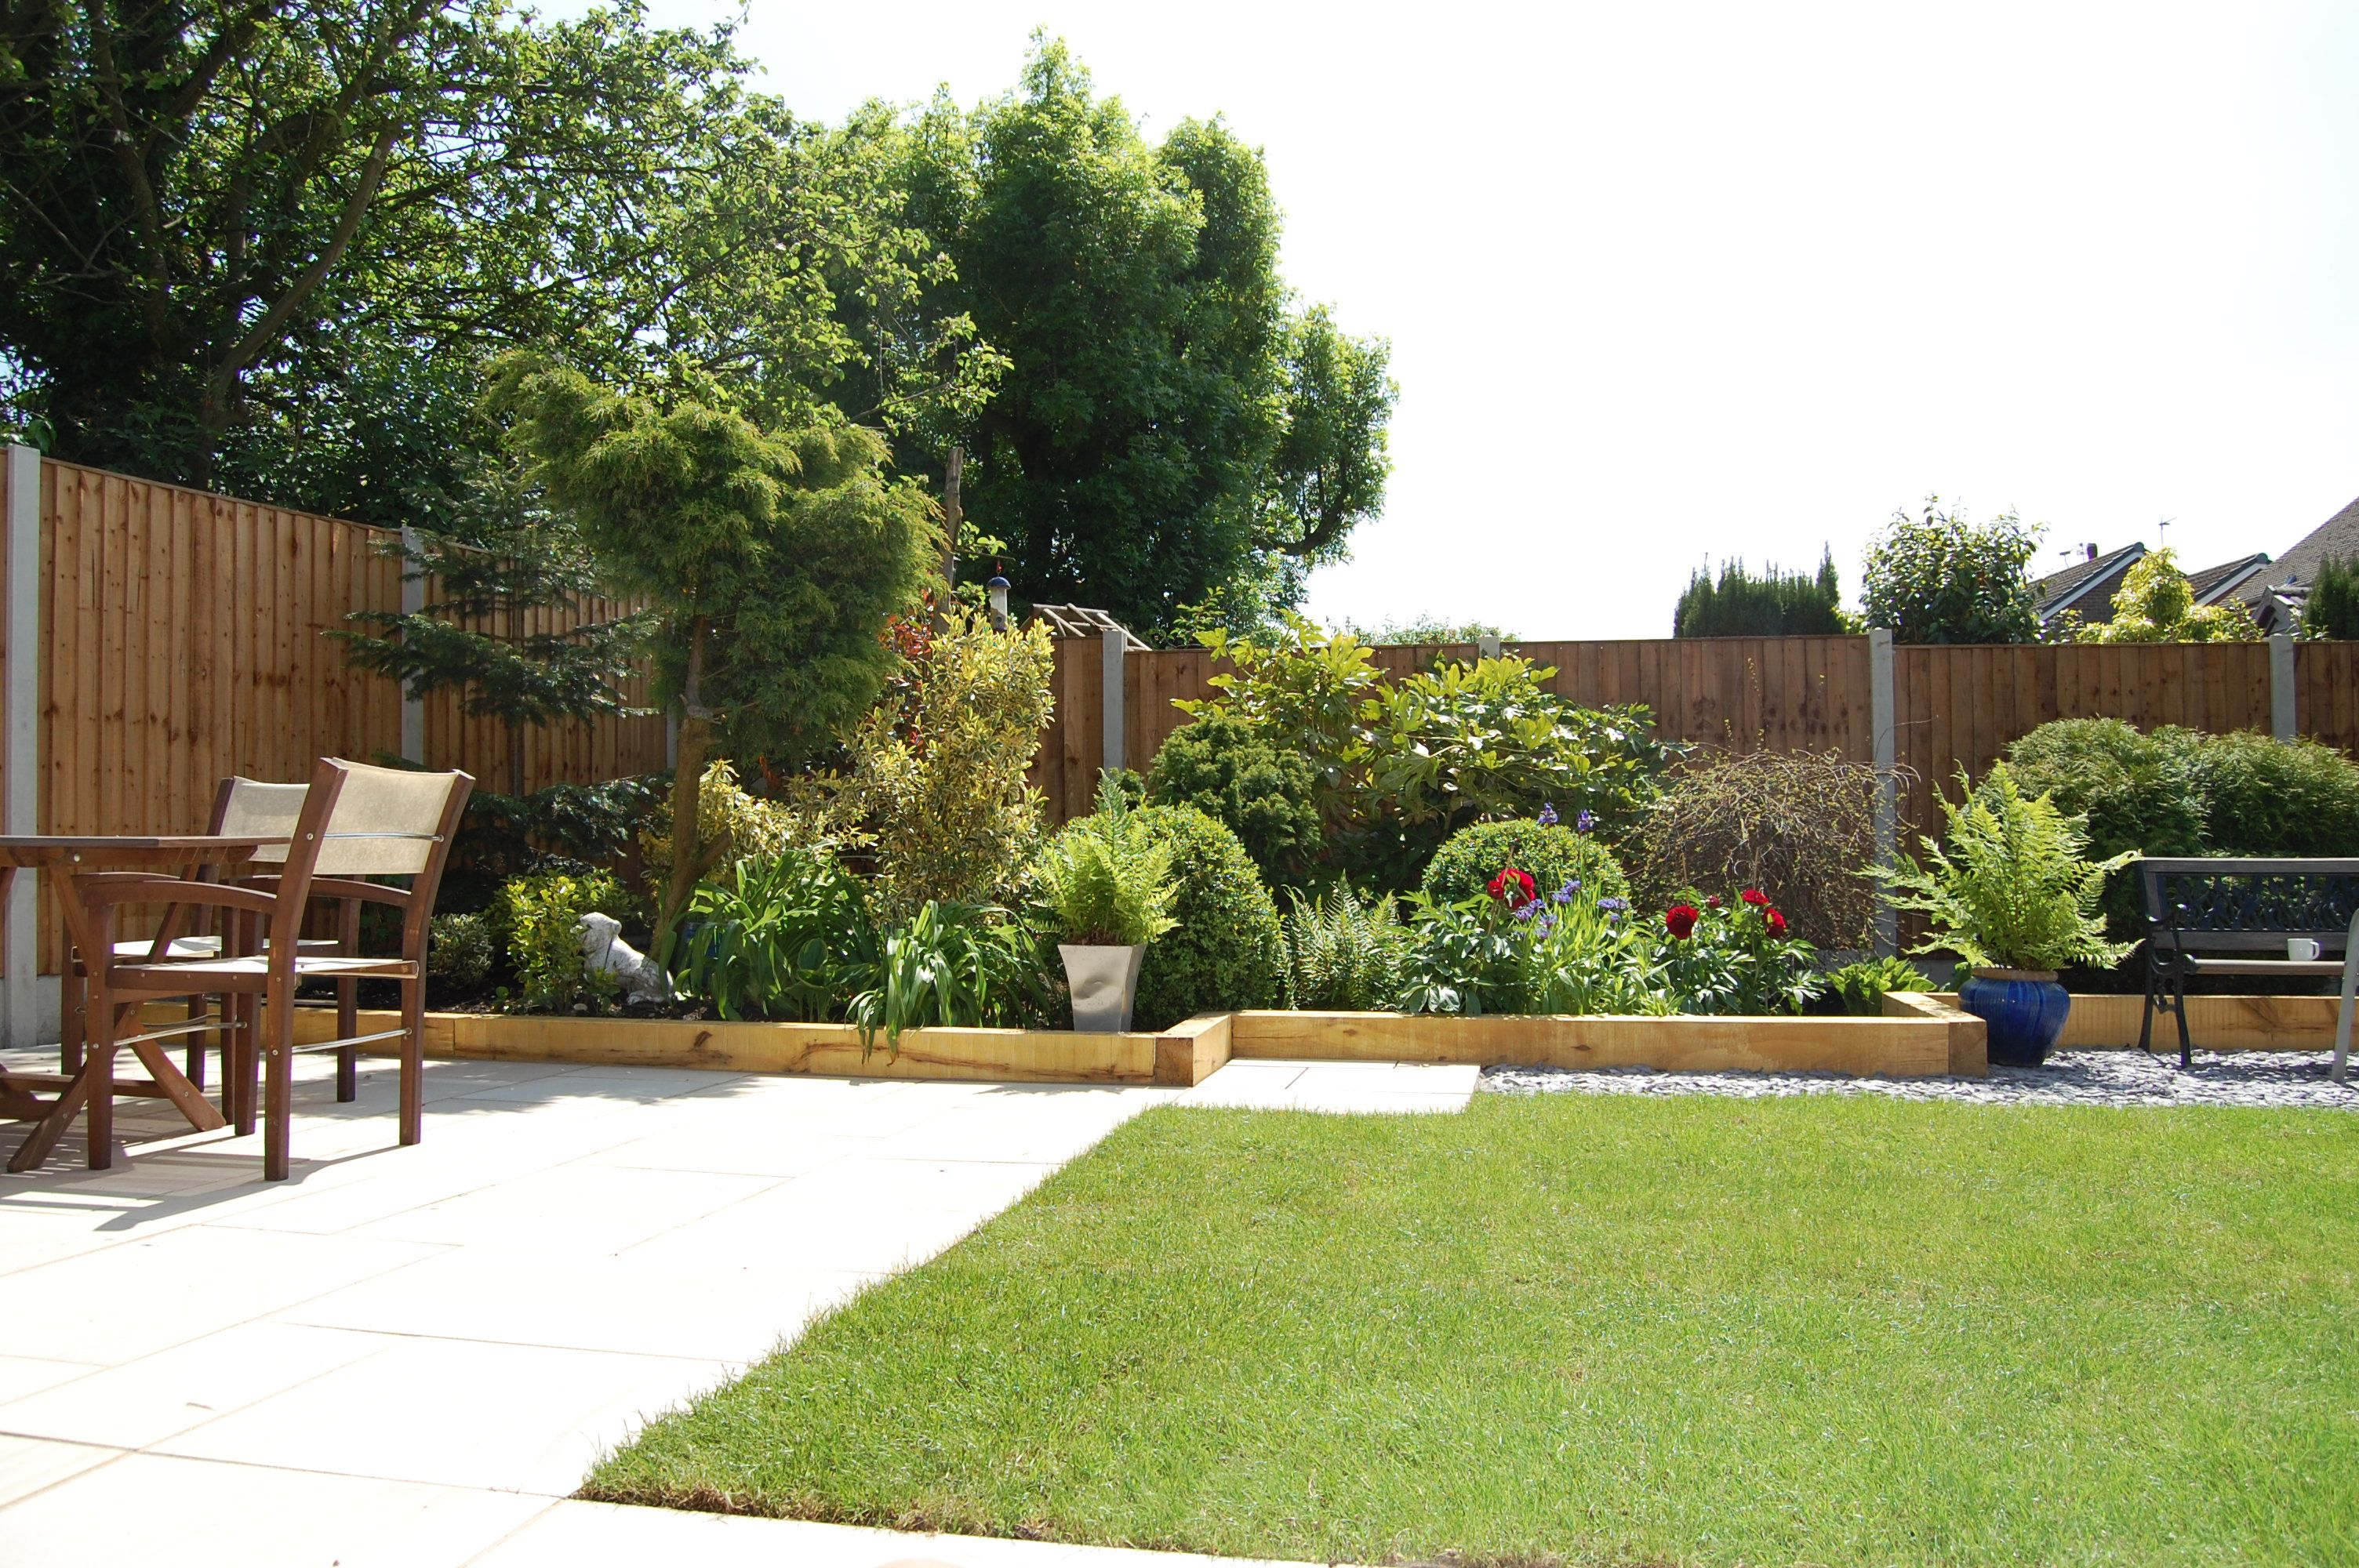 Mr And Mrs Derbyshire Supplied This Picture Of Their Finished Garden Oliver Paving Widnes Gave Them A Complete Garden Mak Garden Makeover Outdoor Decor Patio